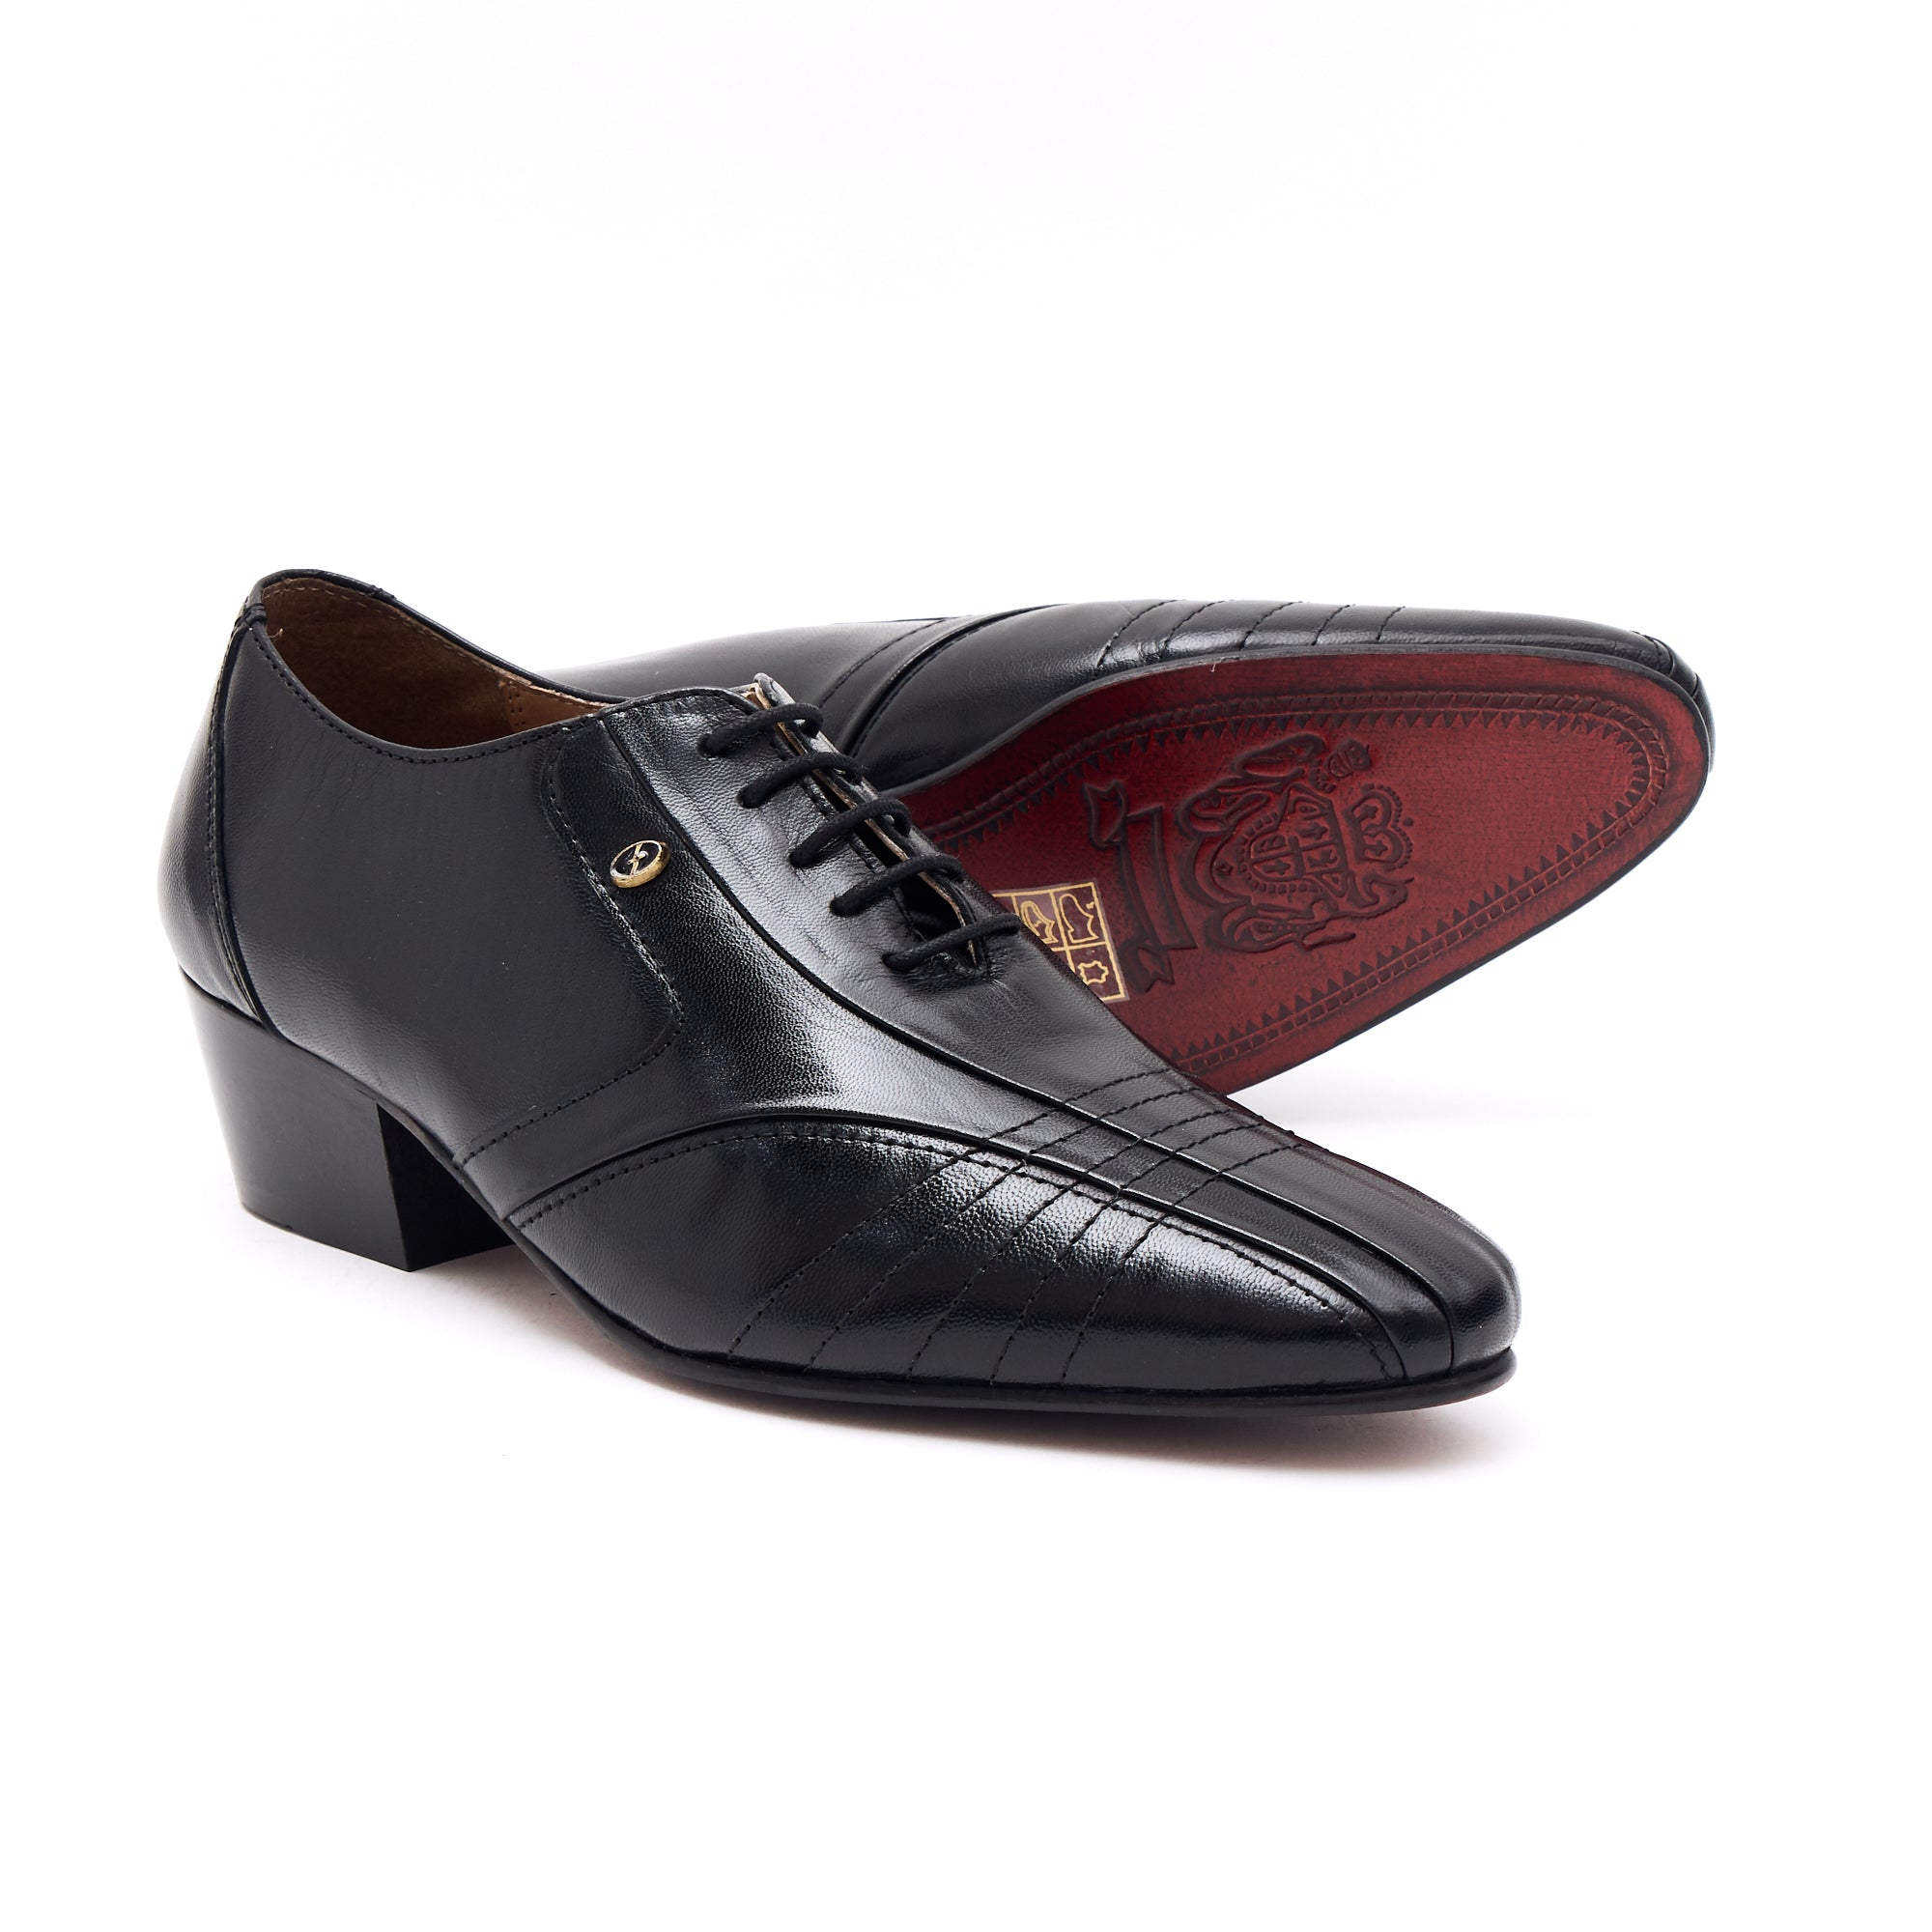 Mens Cuban Heel Leather Shoes- 33483 Black